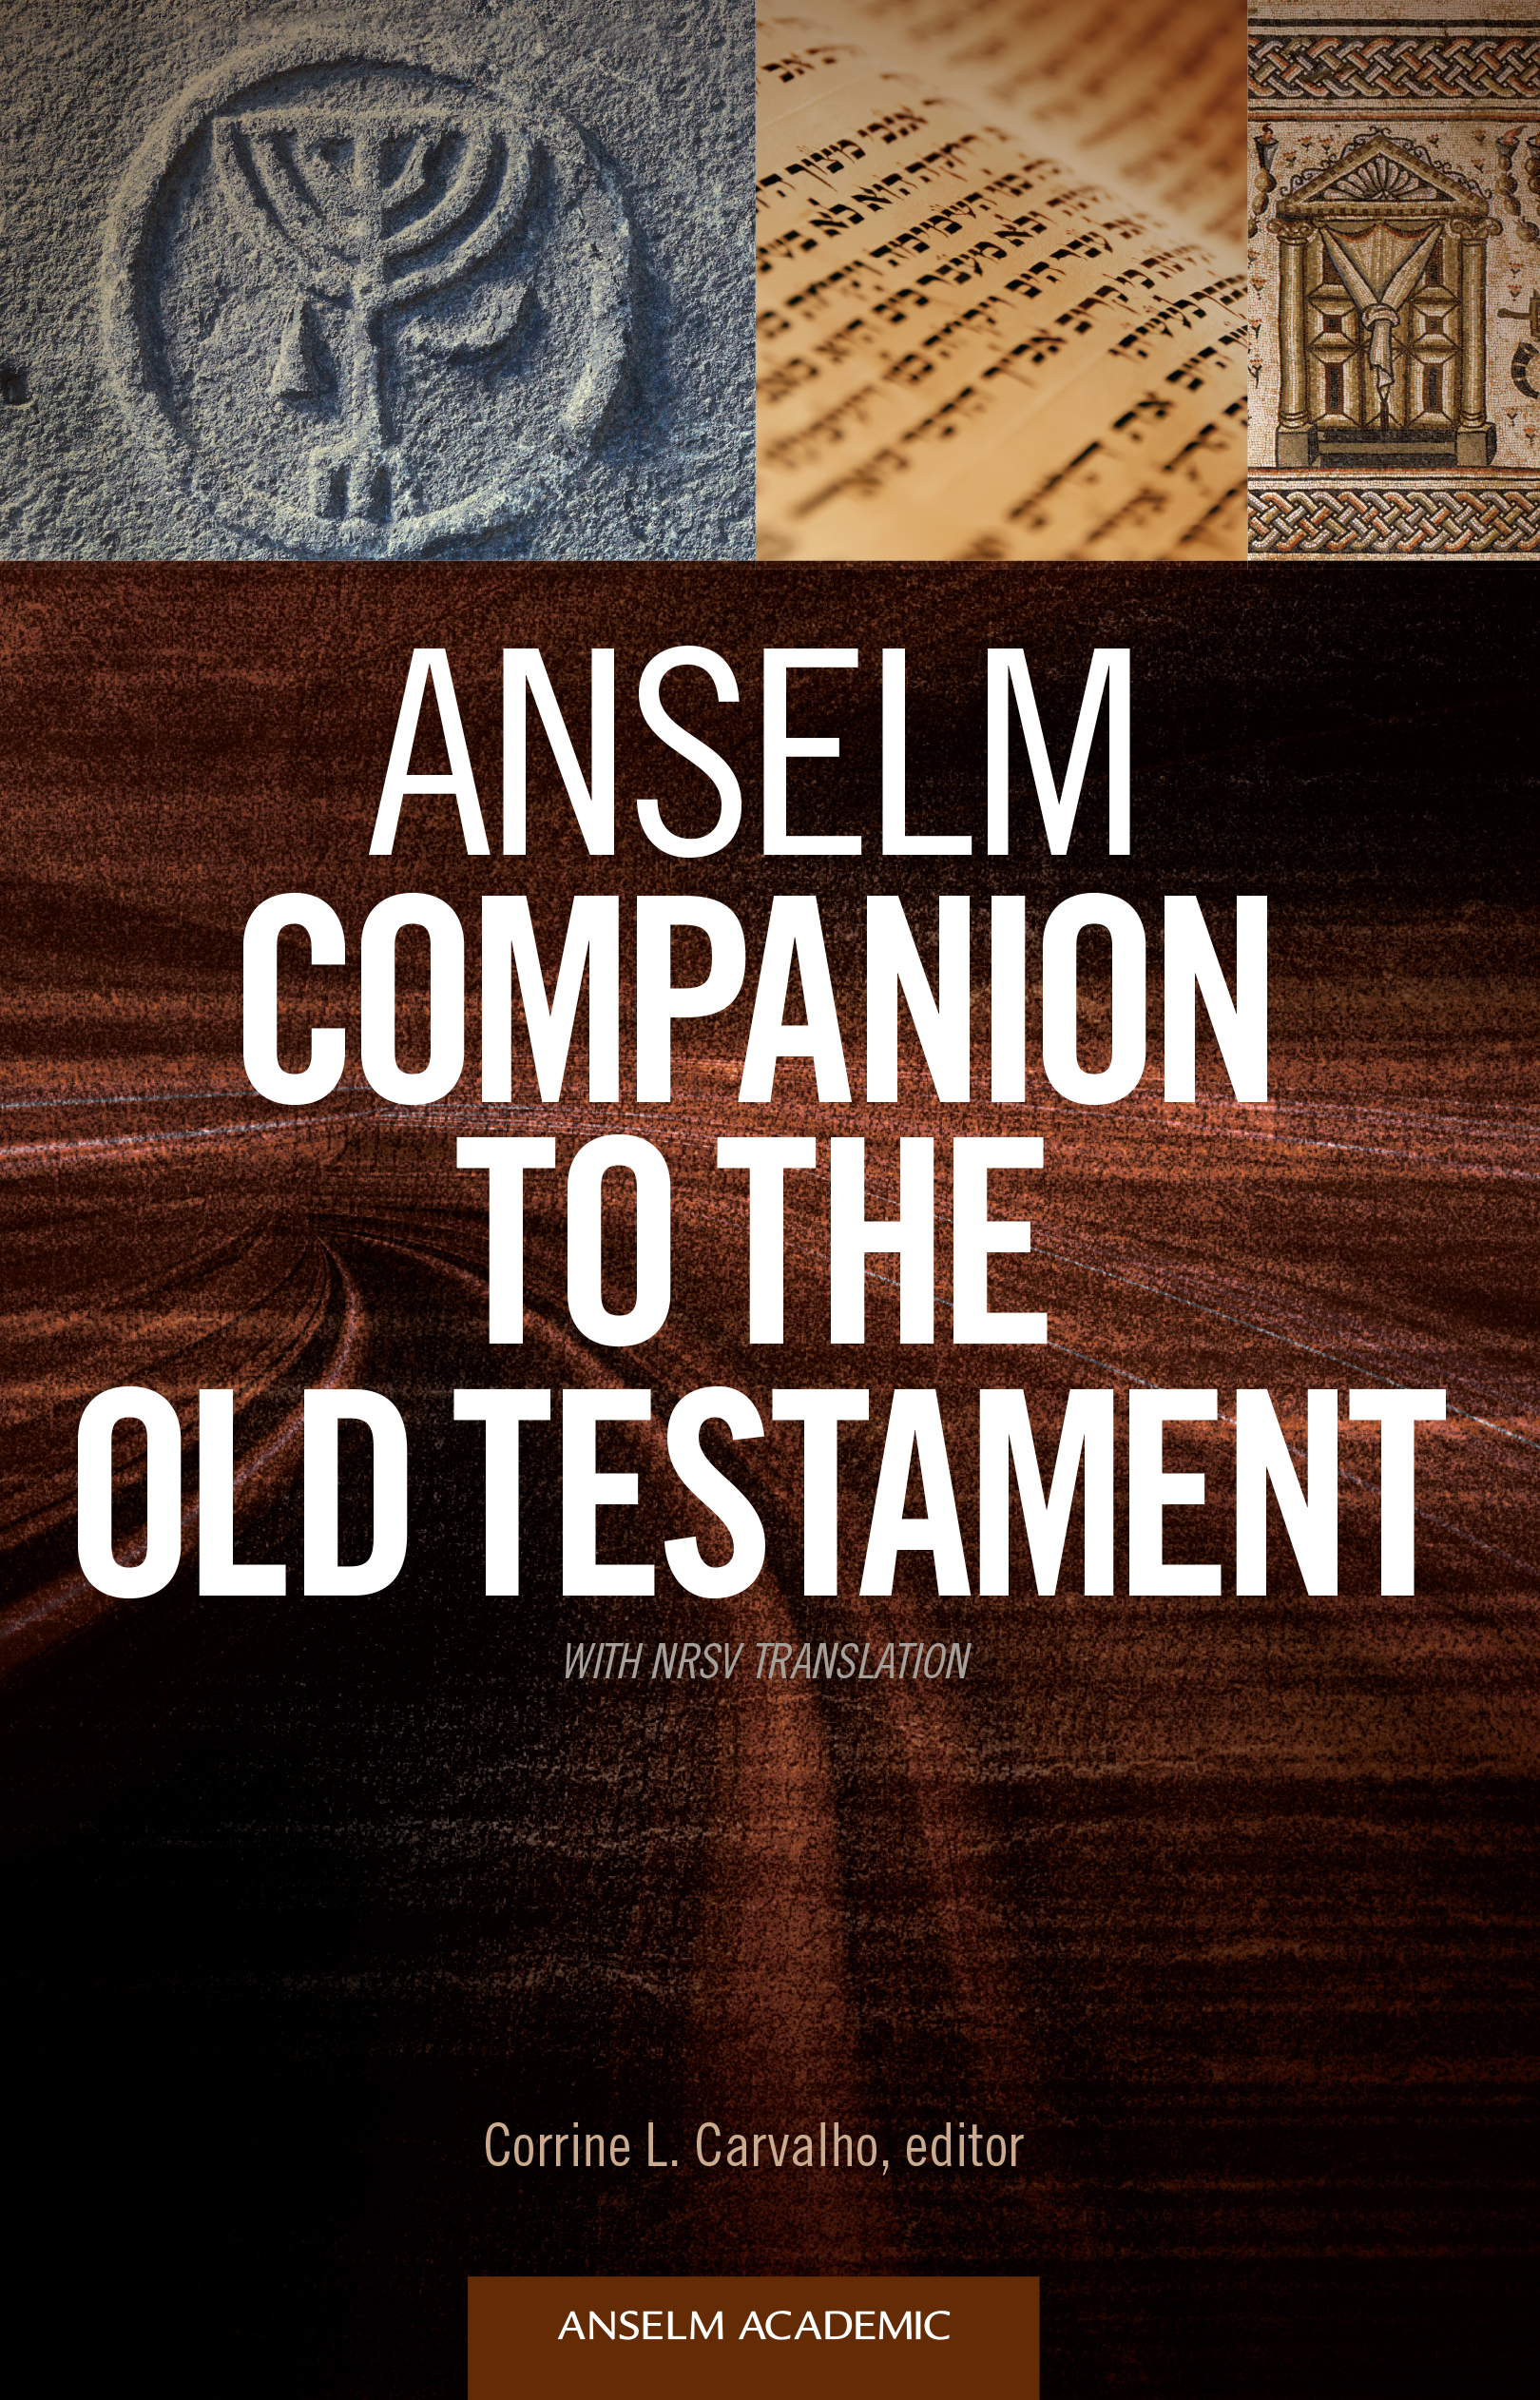 Anselm Companion to the Old Testament - With NRSV Translation